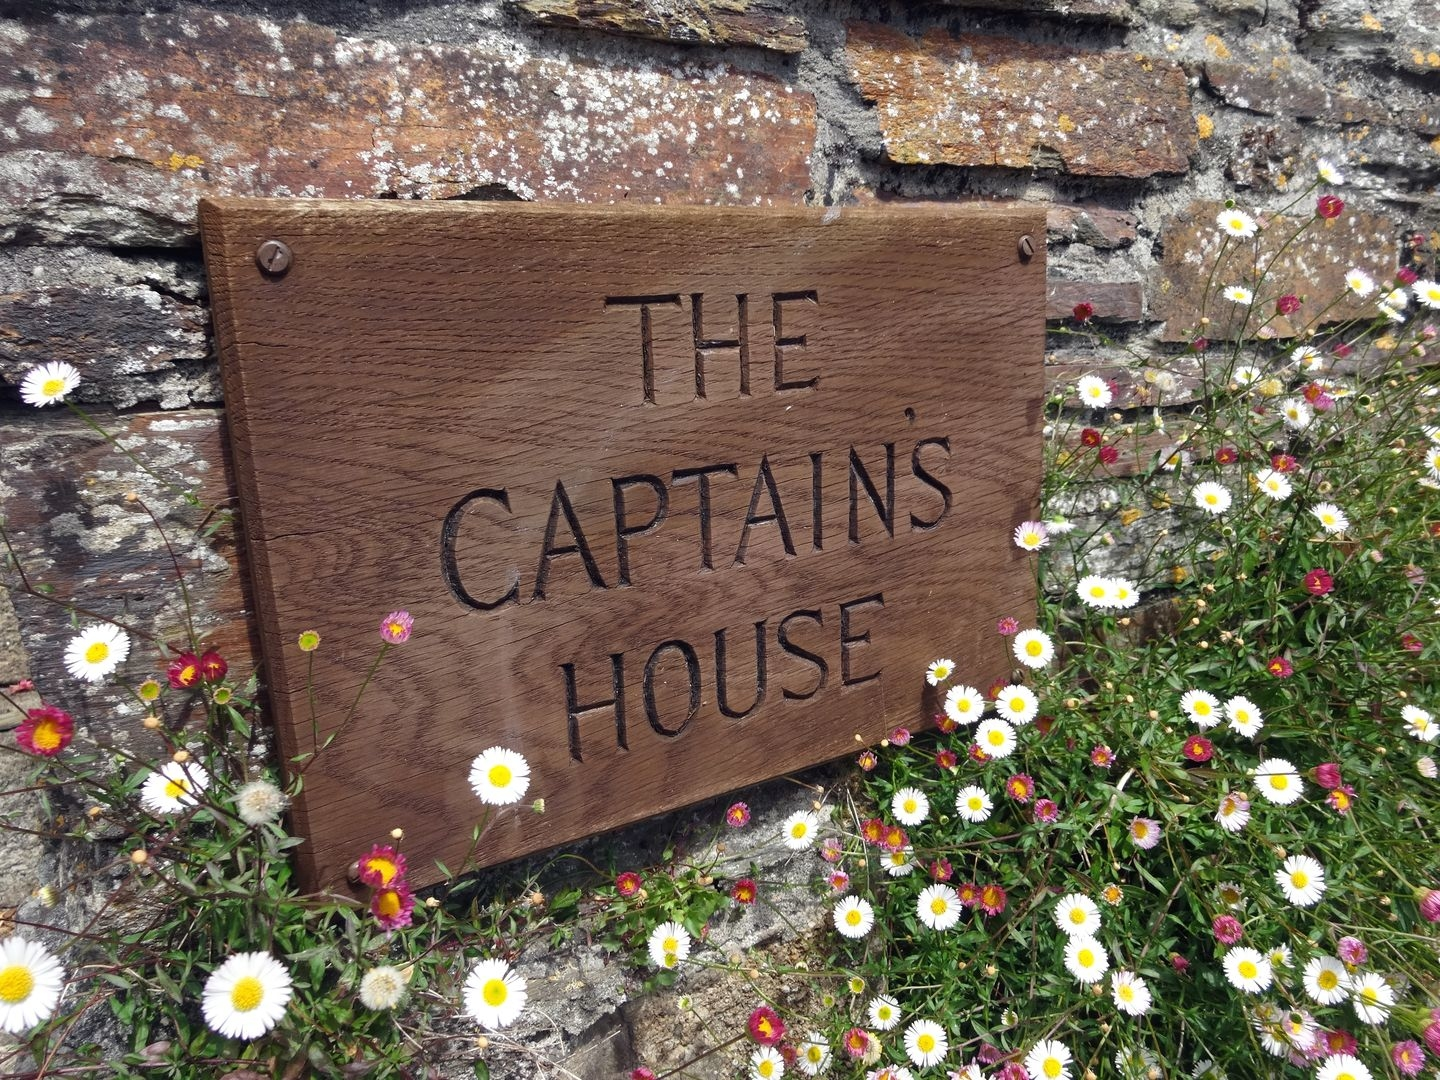 The Captains House